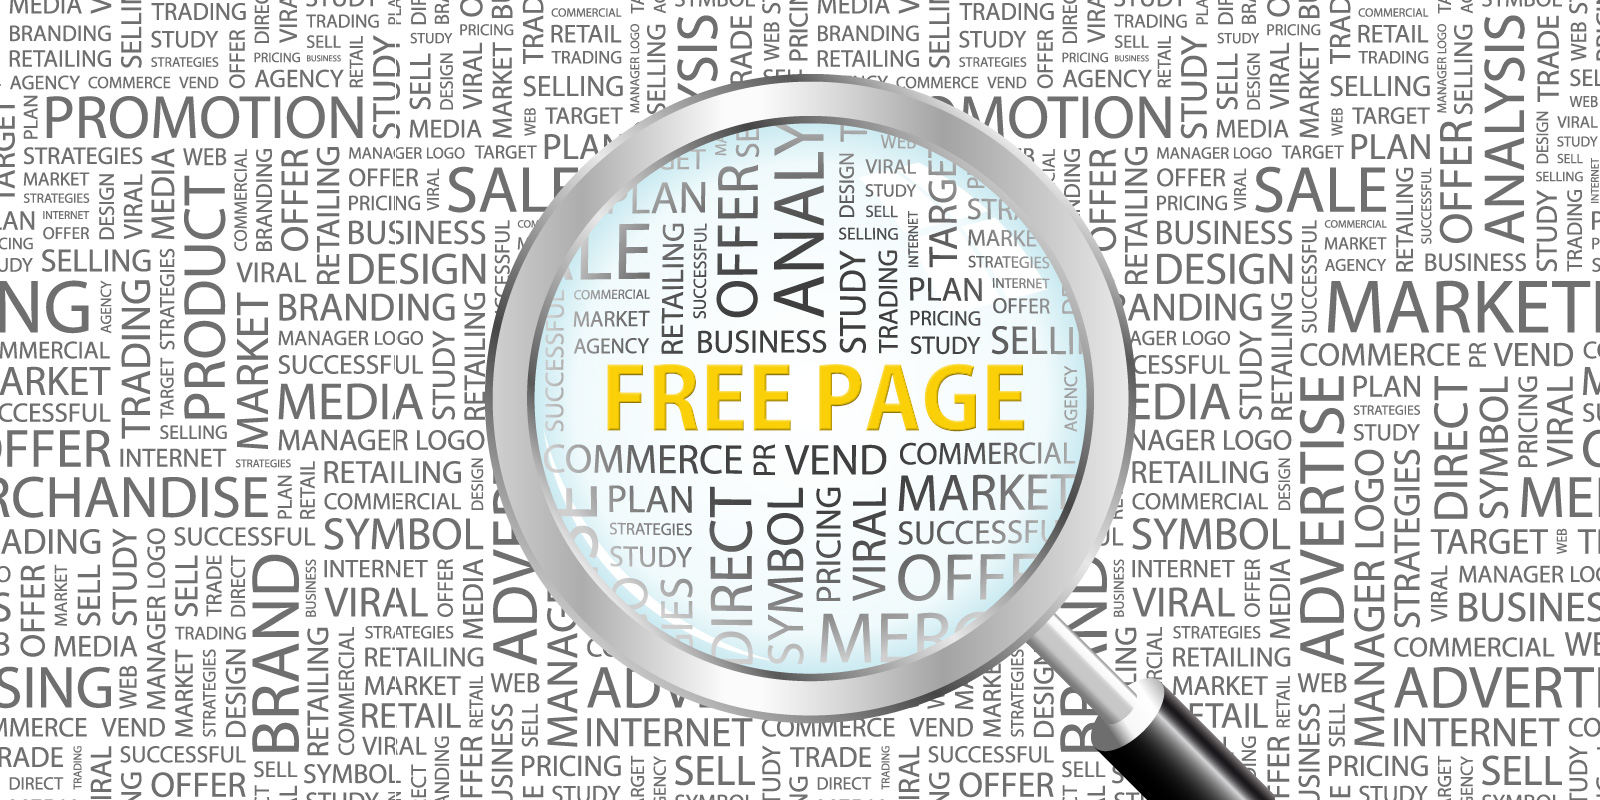 free_page